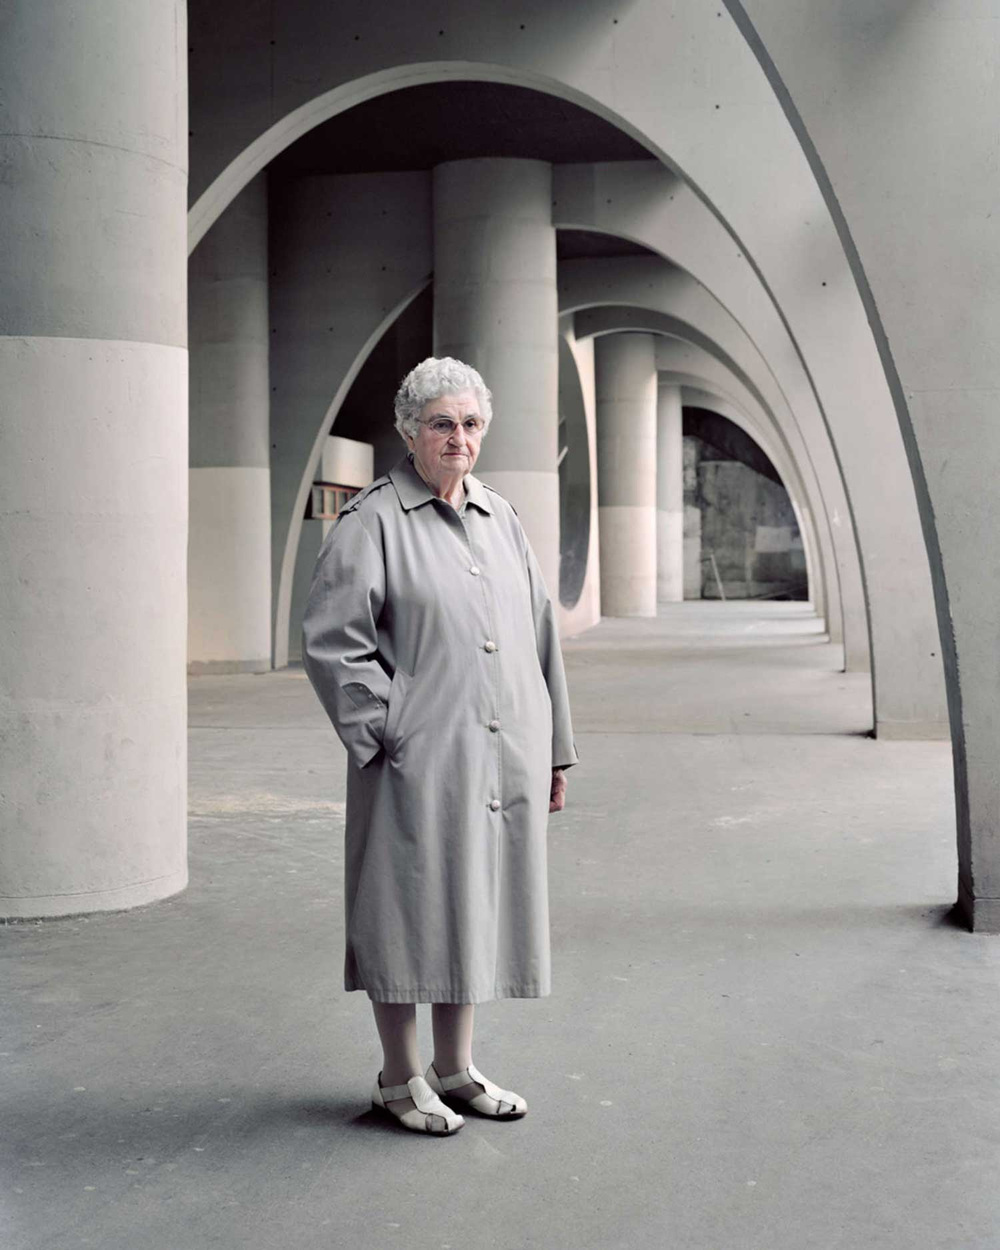 Denise, 81, photographed in 2015 at Renée Gallhoustet's Cité Spinoza, Ivry-sur-Seine, built in 1973.